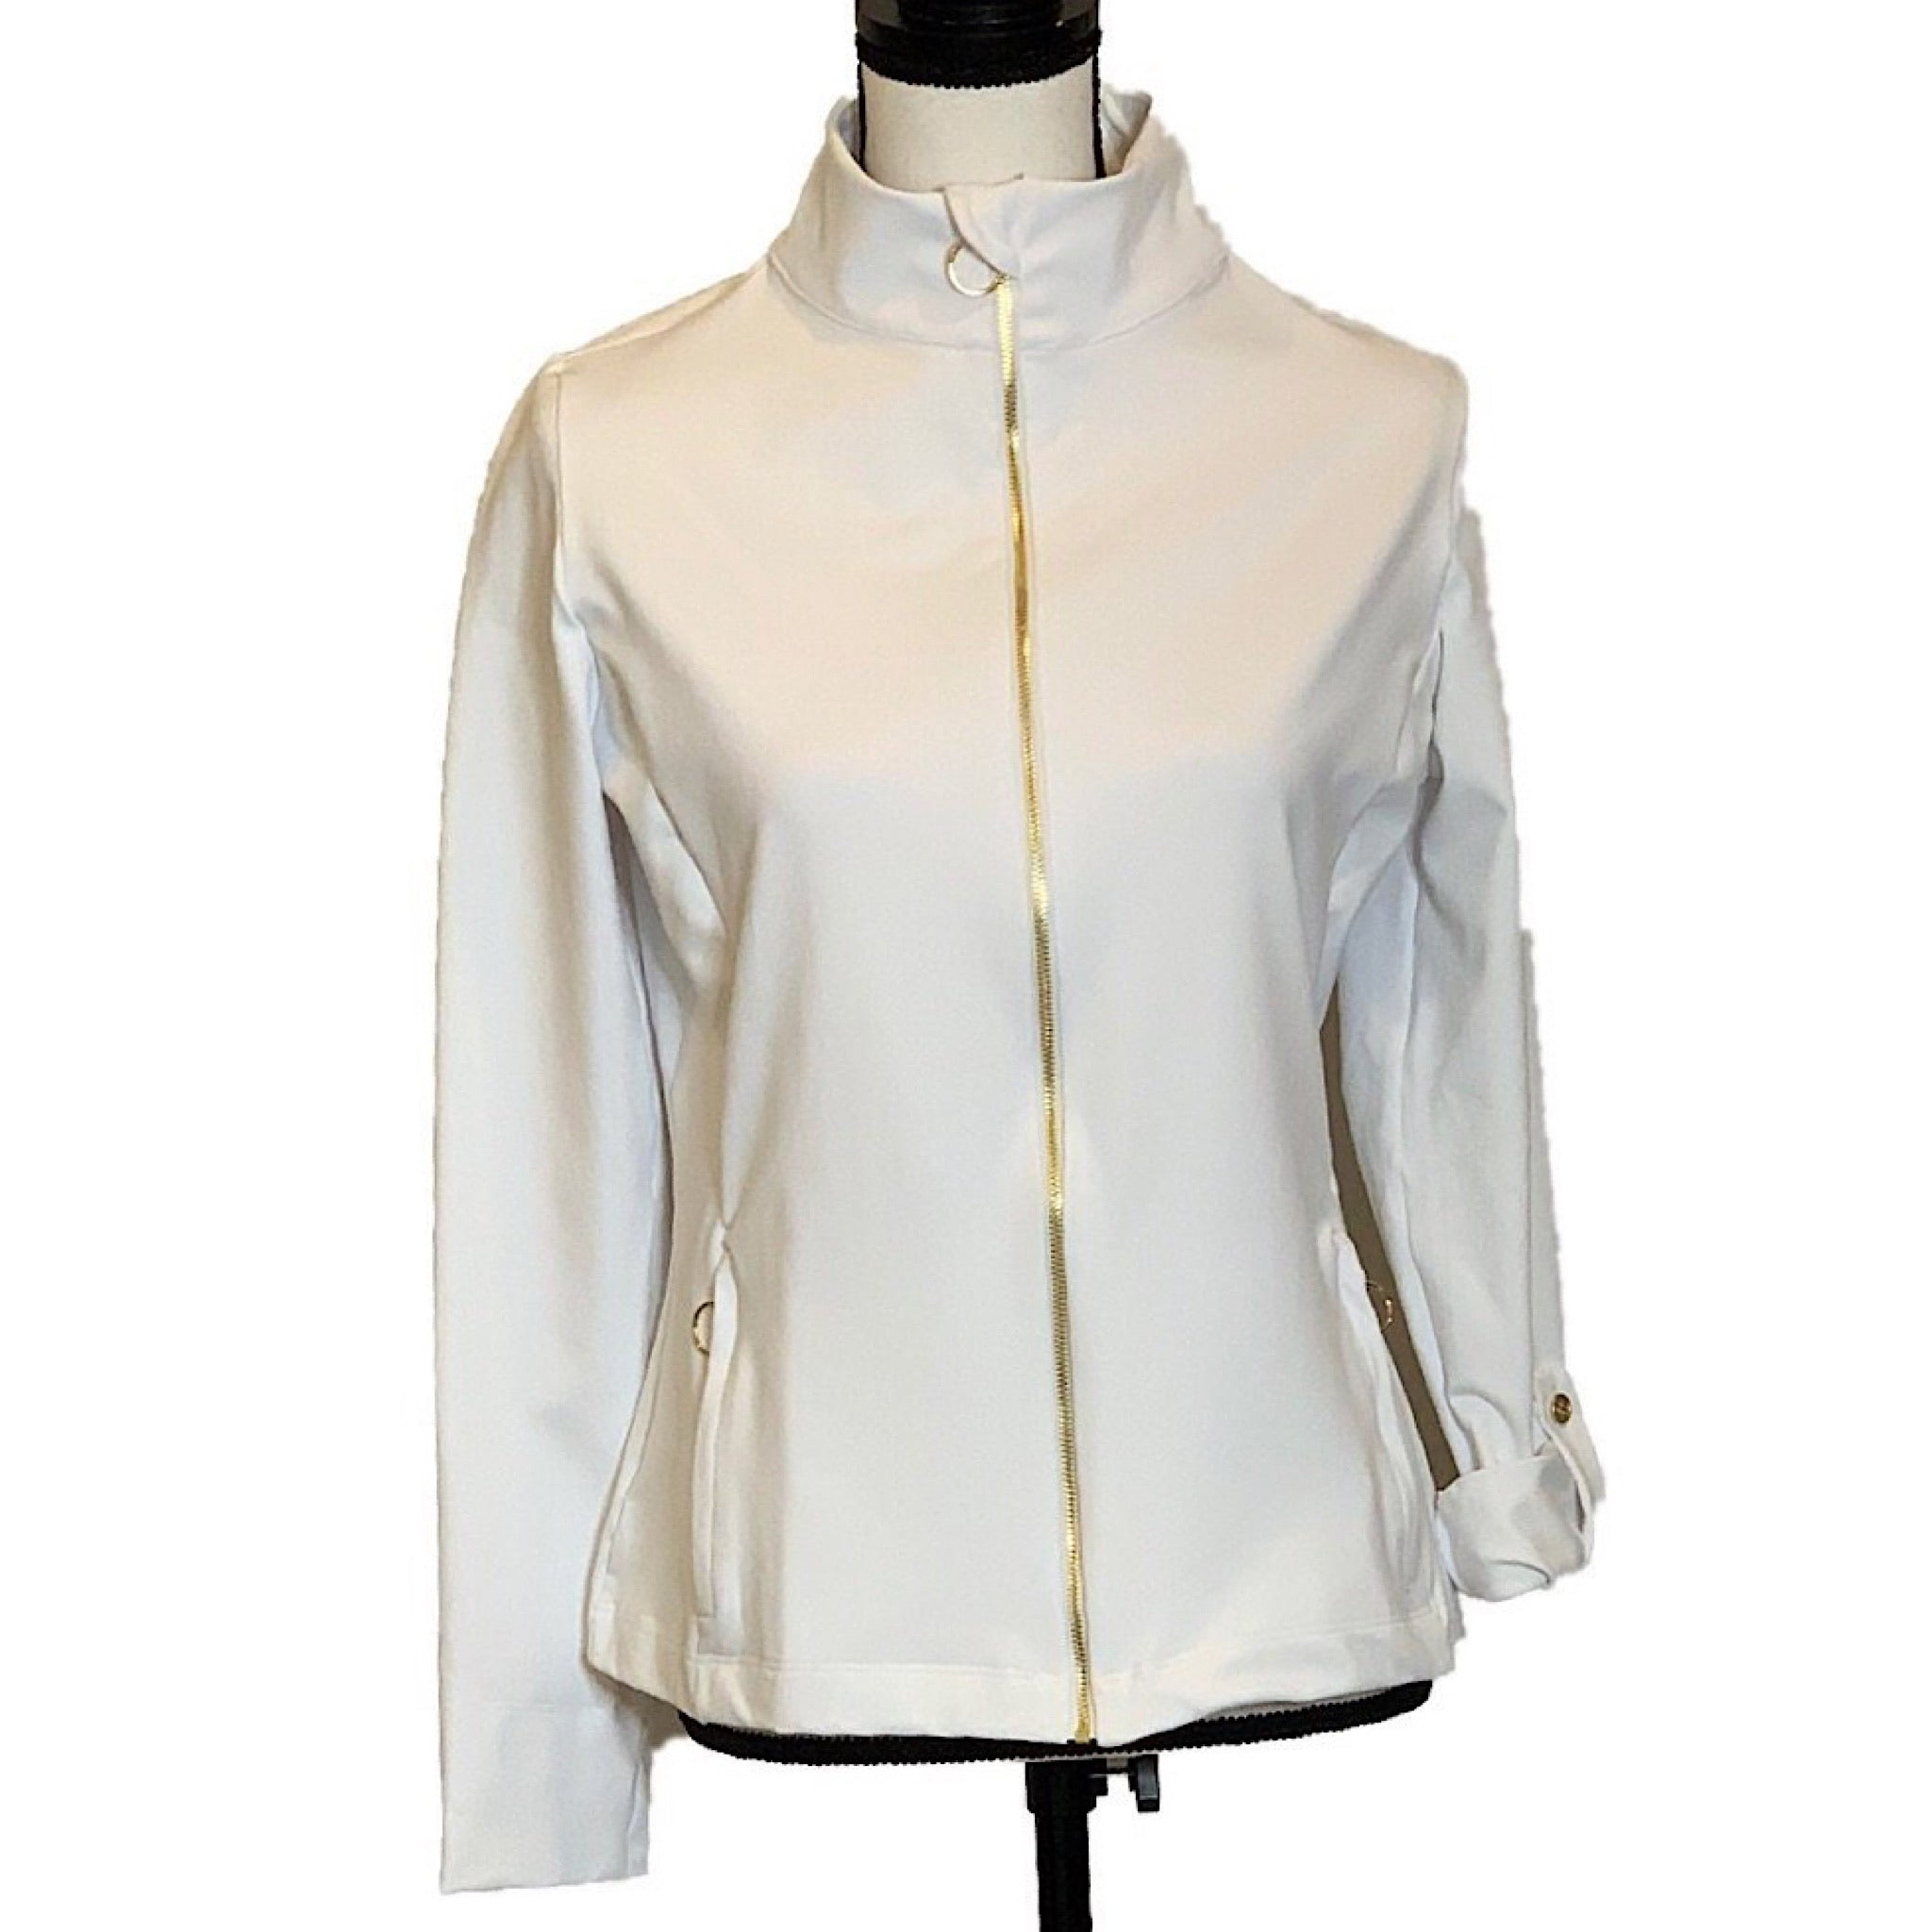 UPF Zip Jacket with Zip Pockets - AMBERNOON